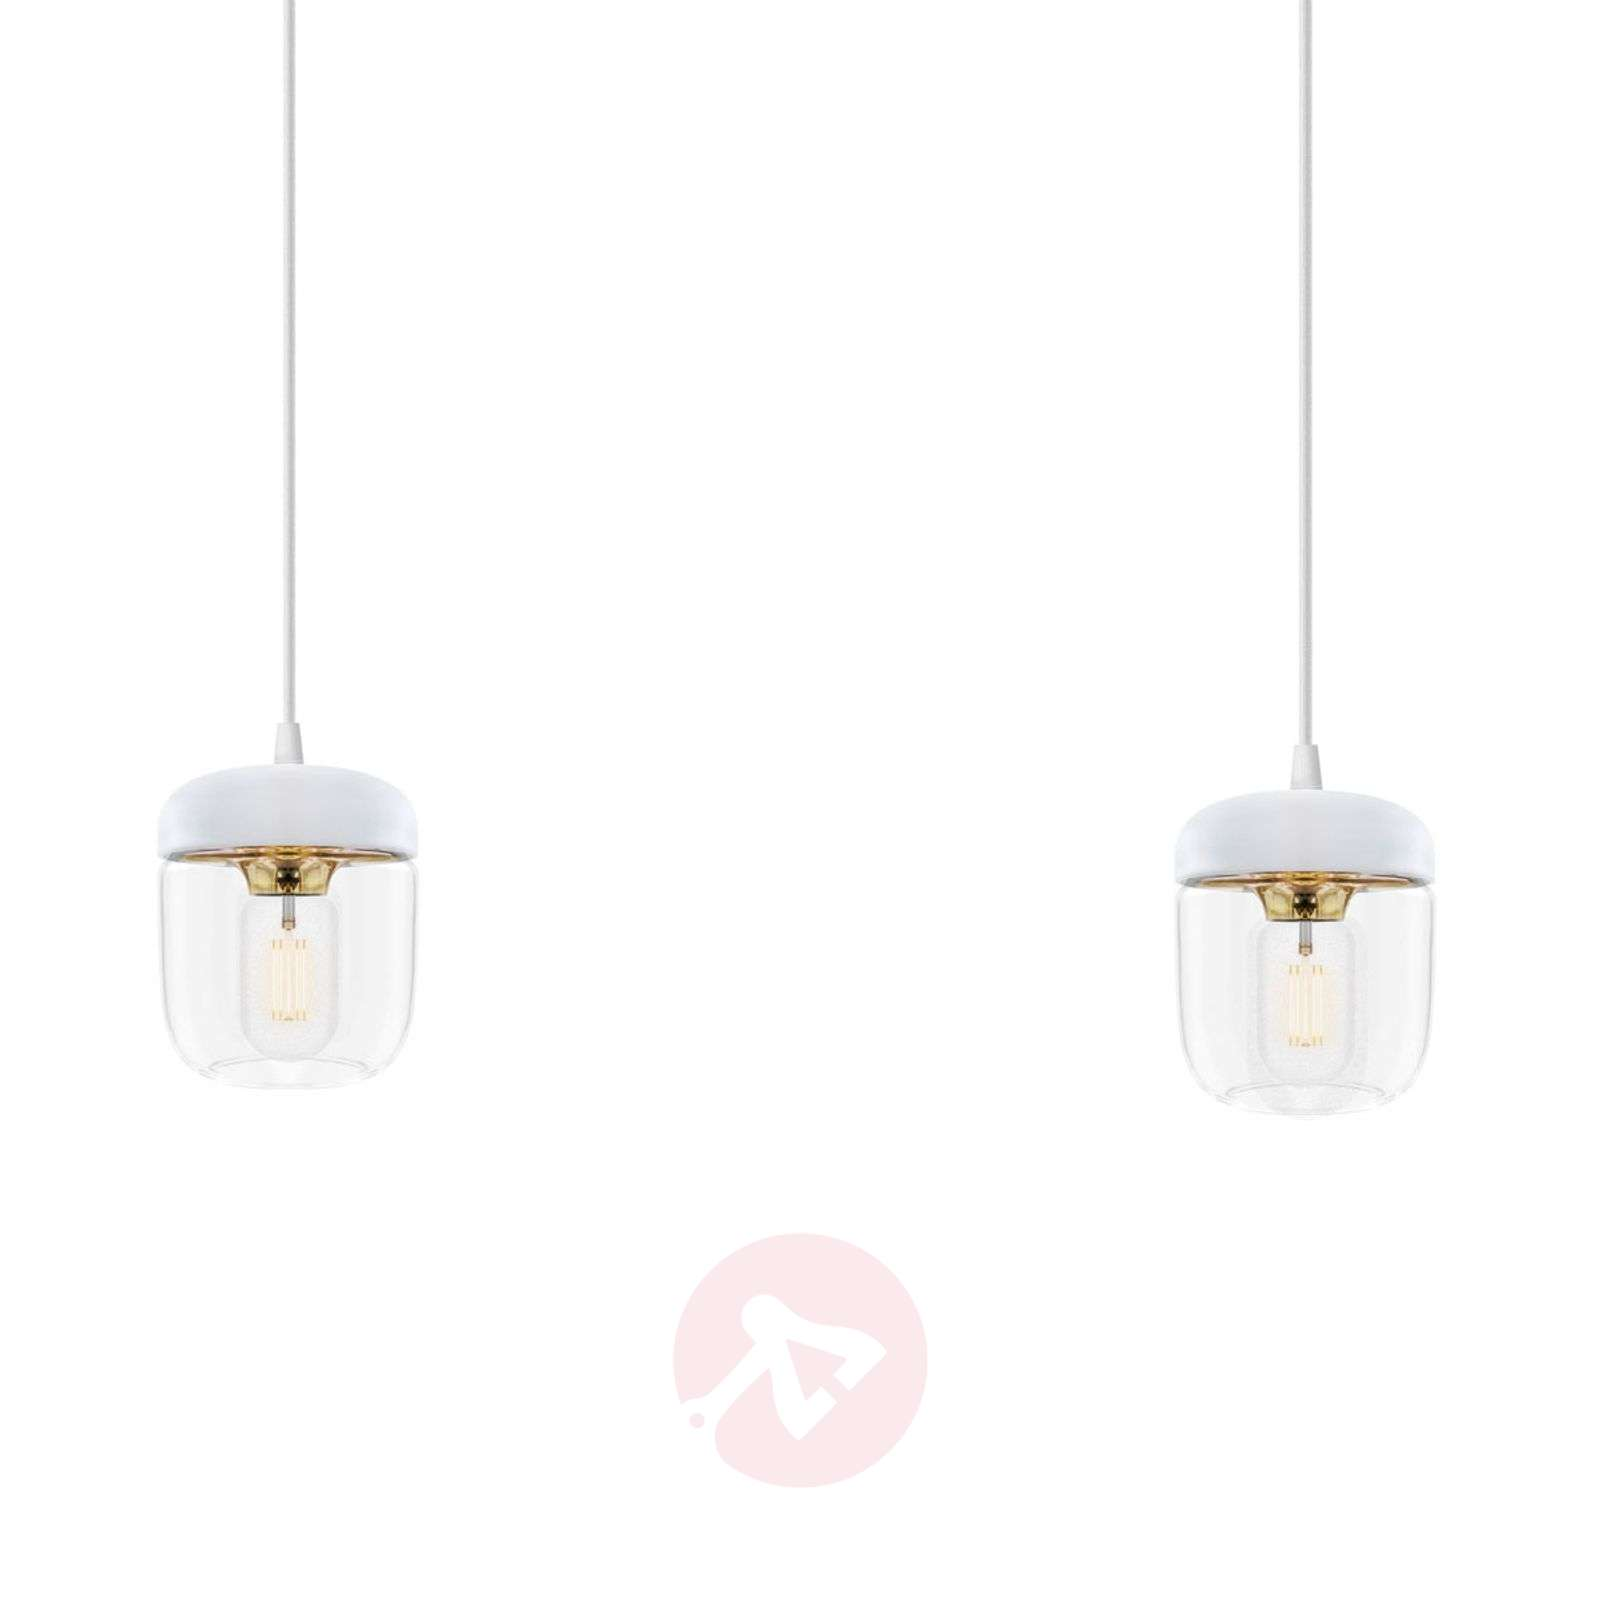 UMAGE Acorn hanging lamp two-bulb, white/brass-9521085-01